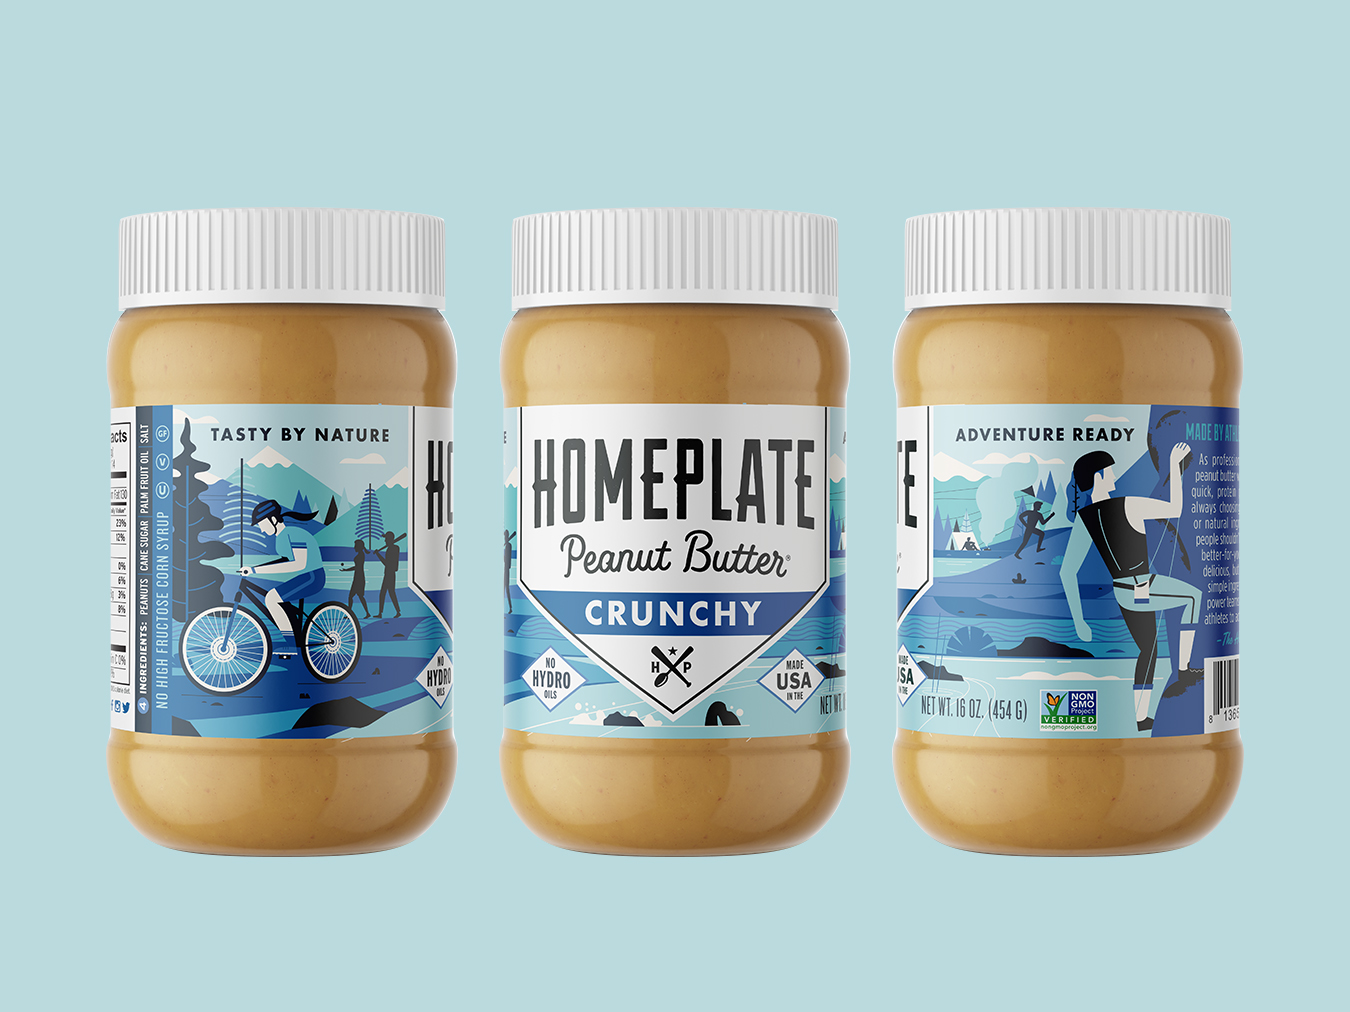 Homeplate Crunchy logo redesign outdoors homeplate rebrand package design illustration peanut butter